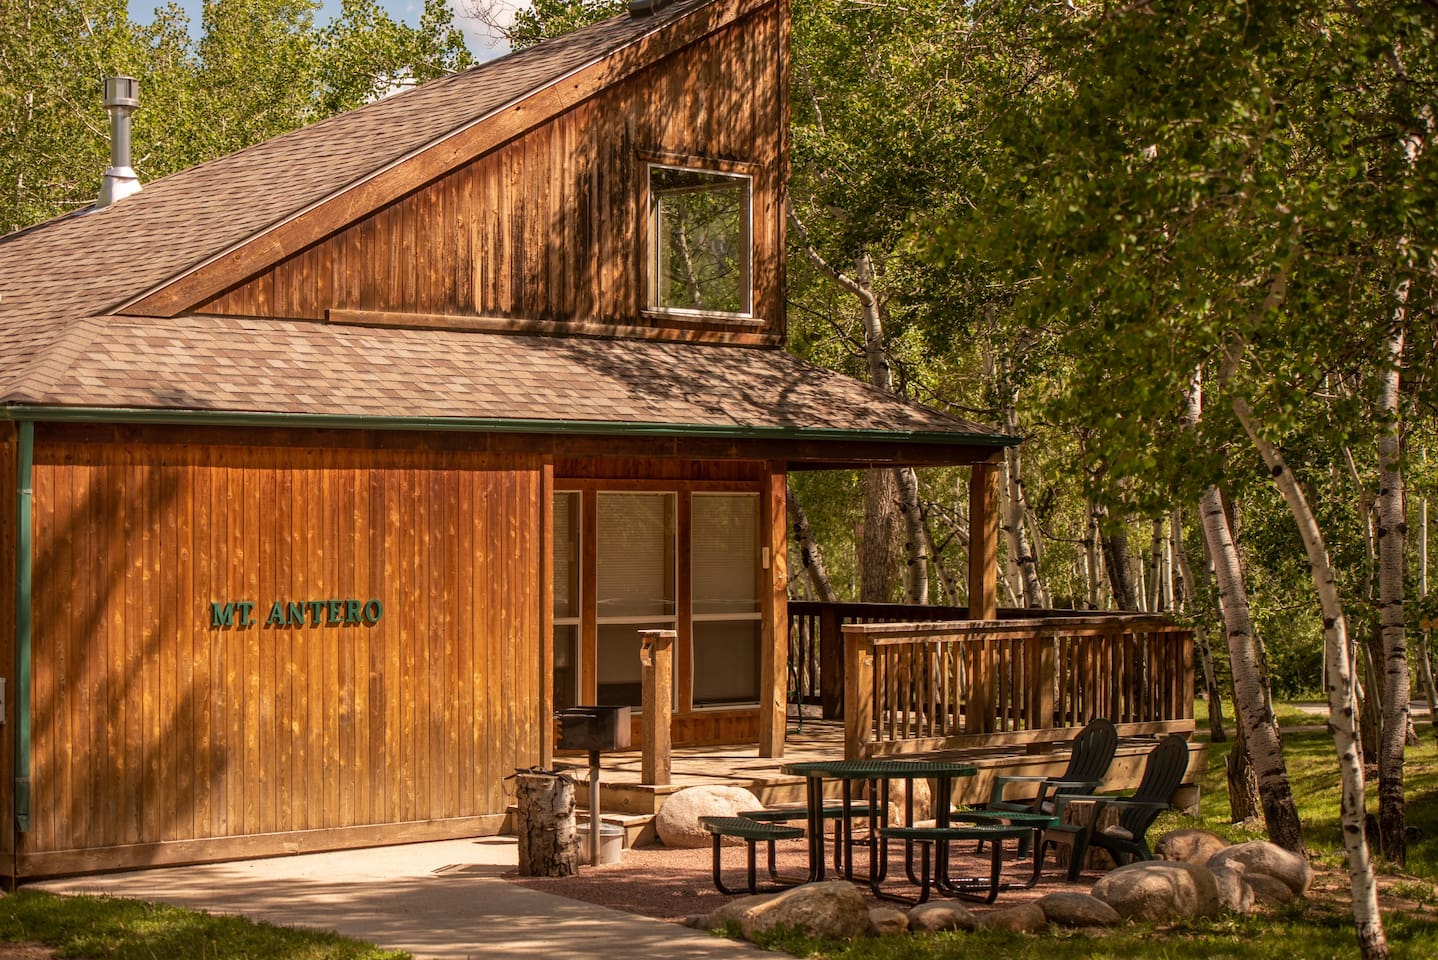 Mt. Antero Chalet is surrounded by aspen trees and has lovely views of the property from the front porch.